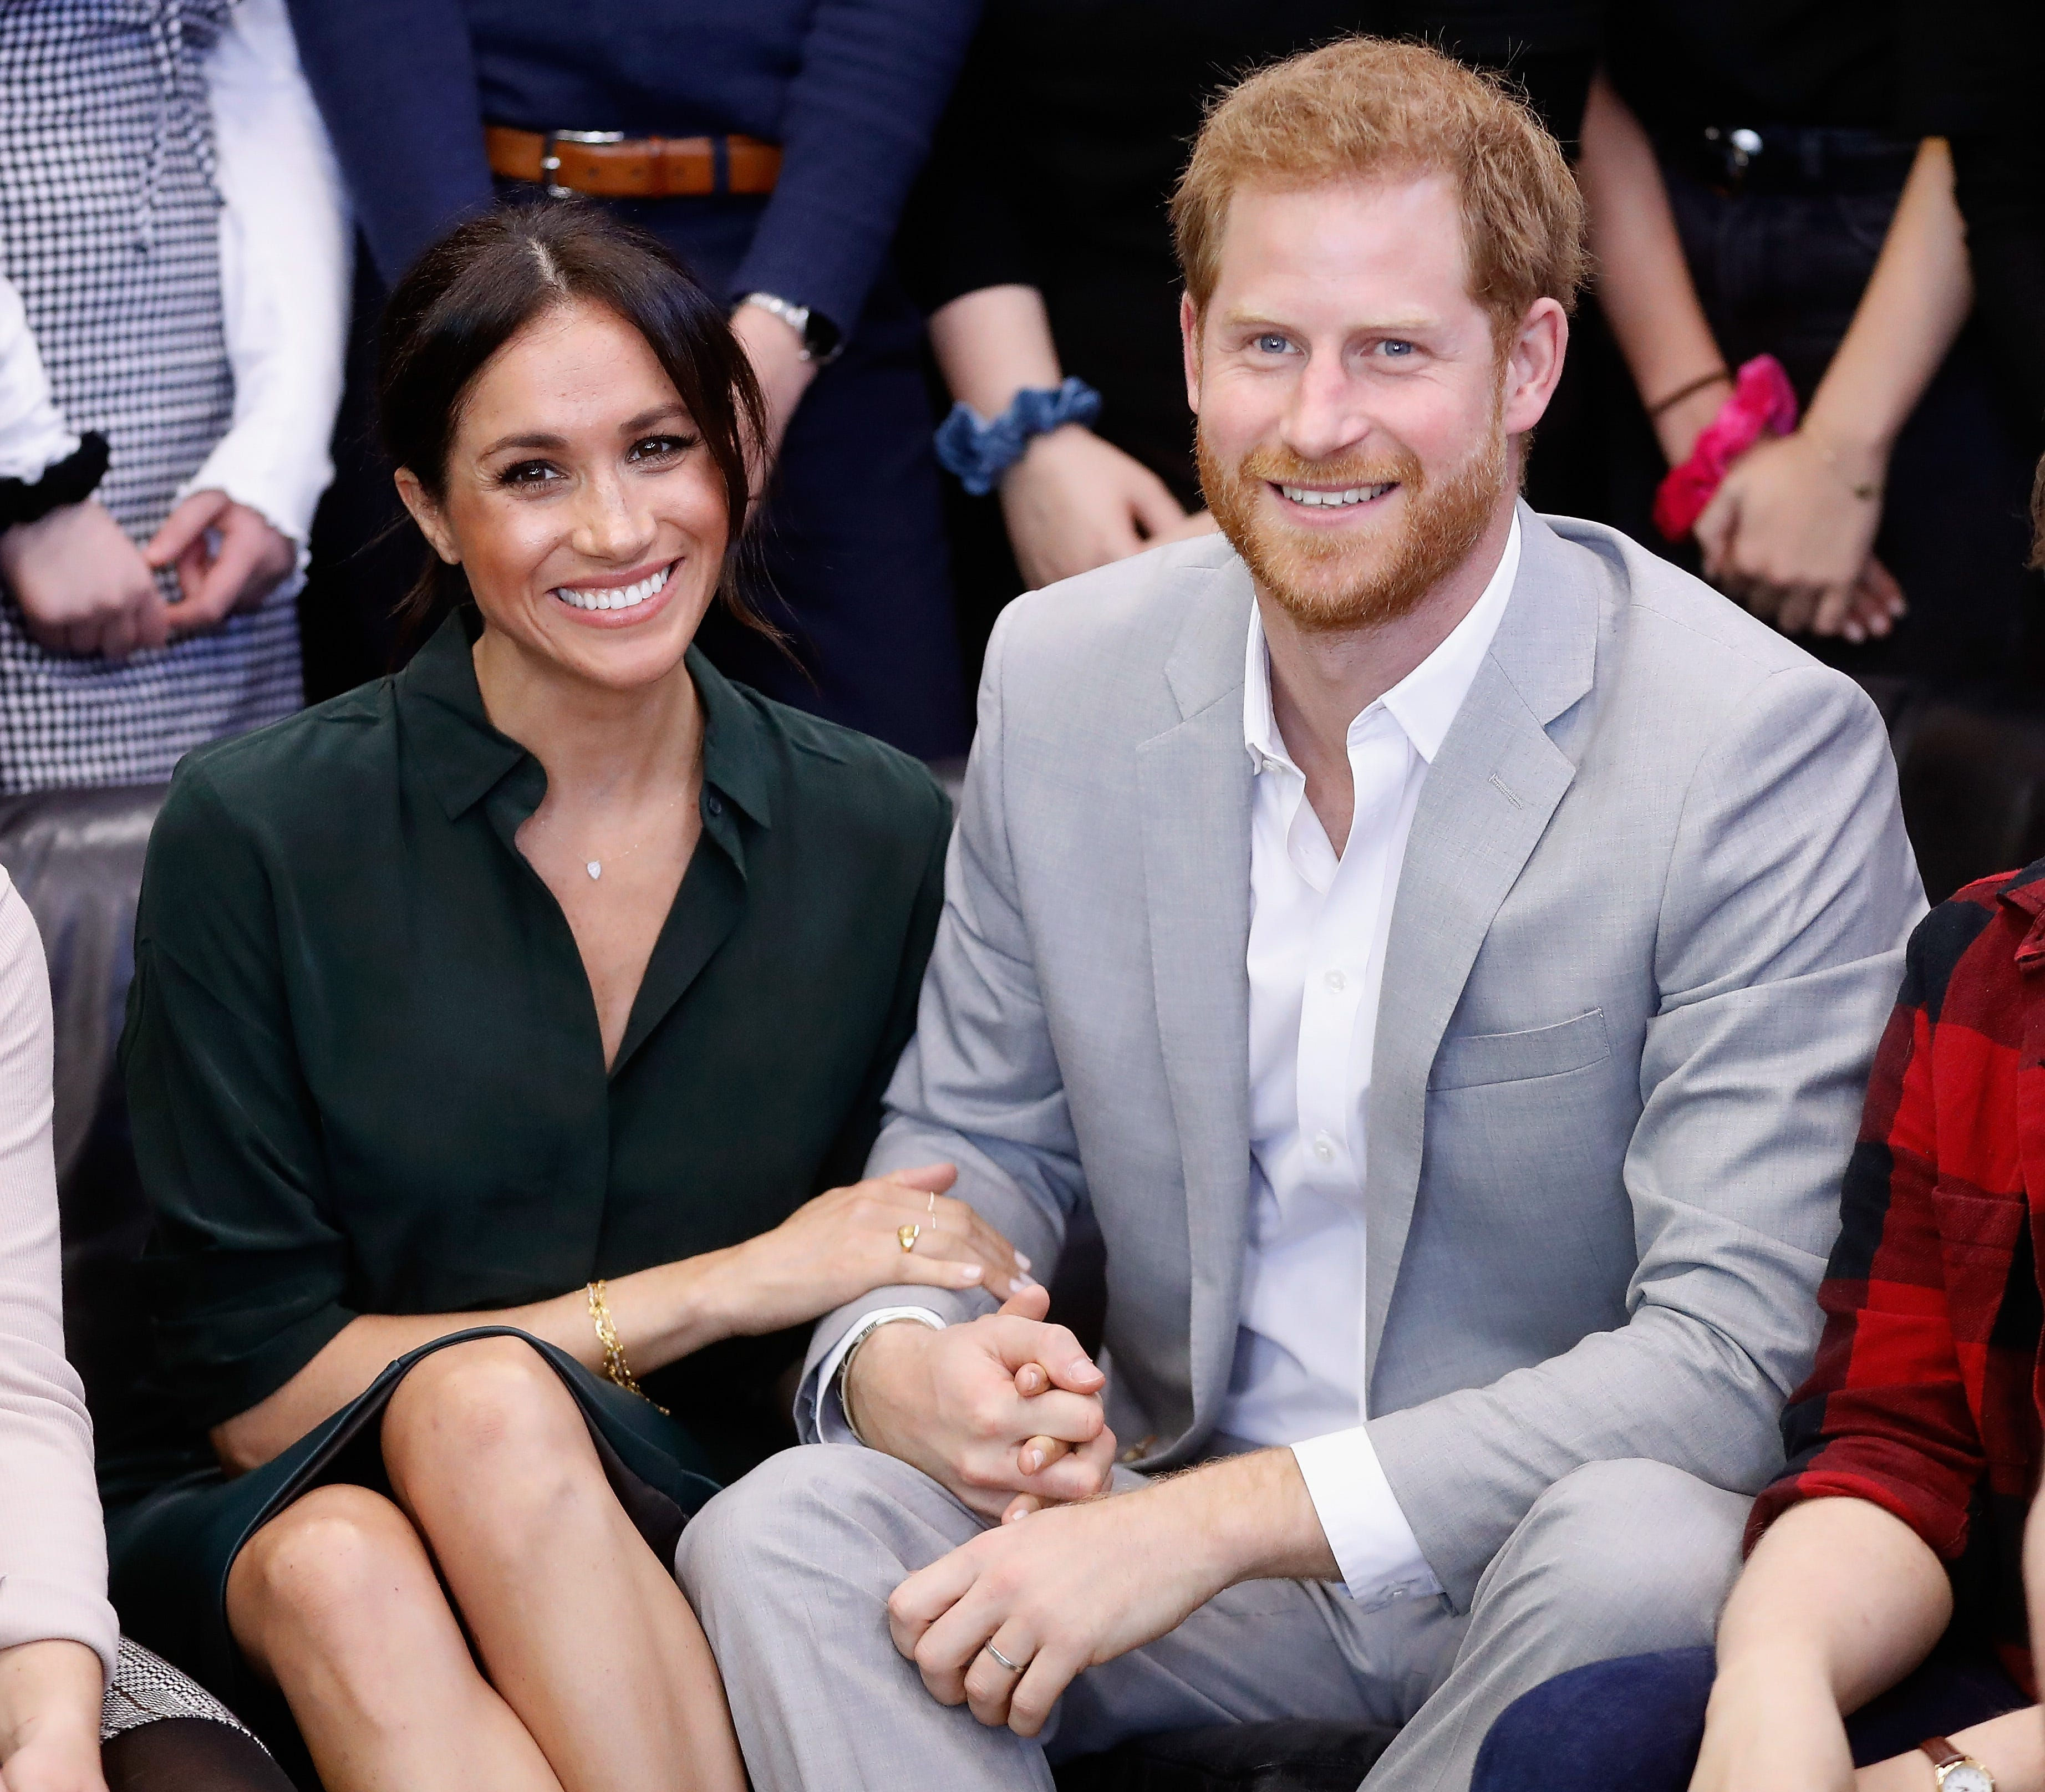 Prince Harry and Duchess Meghan of Sussex are expecting a baby in spring 2019. This will be the first child for the couple.